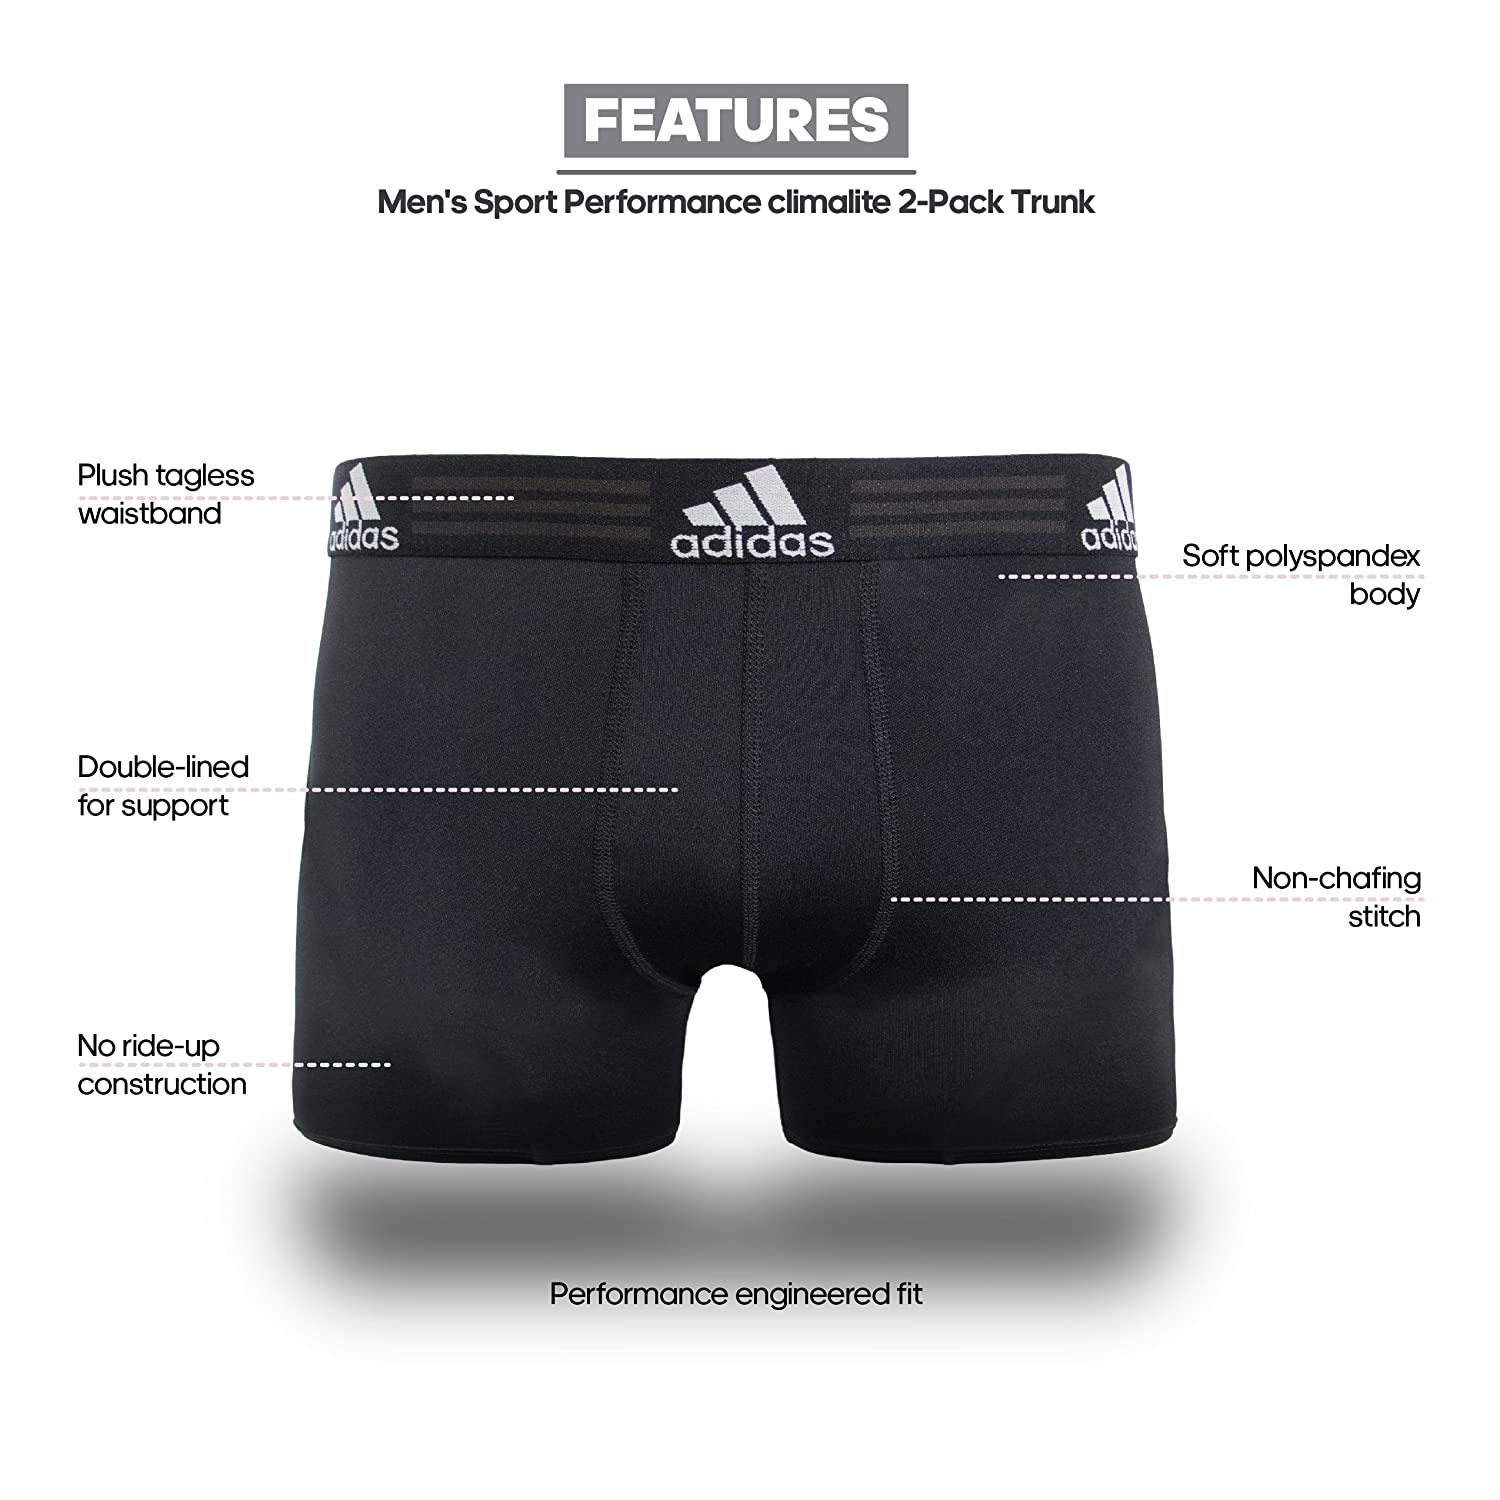 58a7e40ad562 Amazon.com  adidas Men s Sport Performance Climalite Trunk Underwear  (2-Pack)  Sports   Outdoors